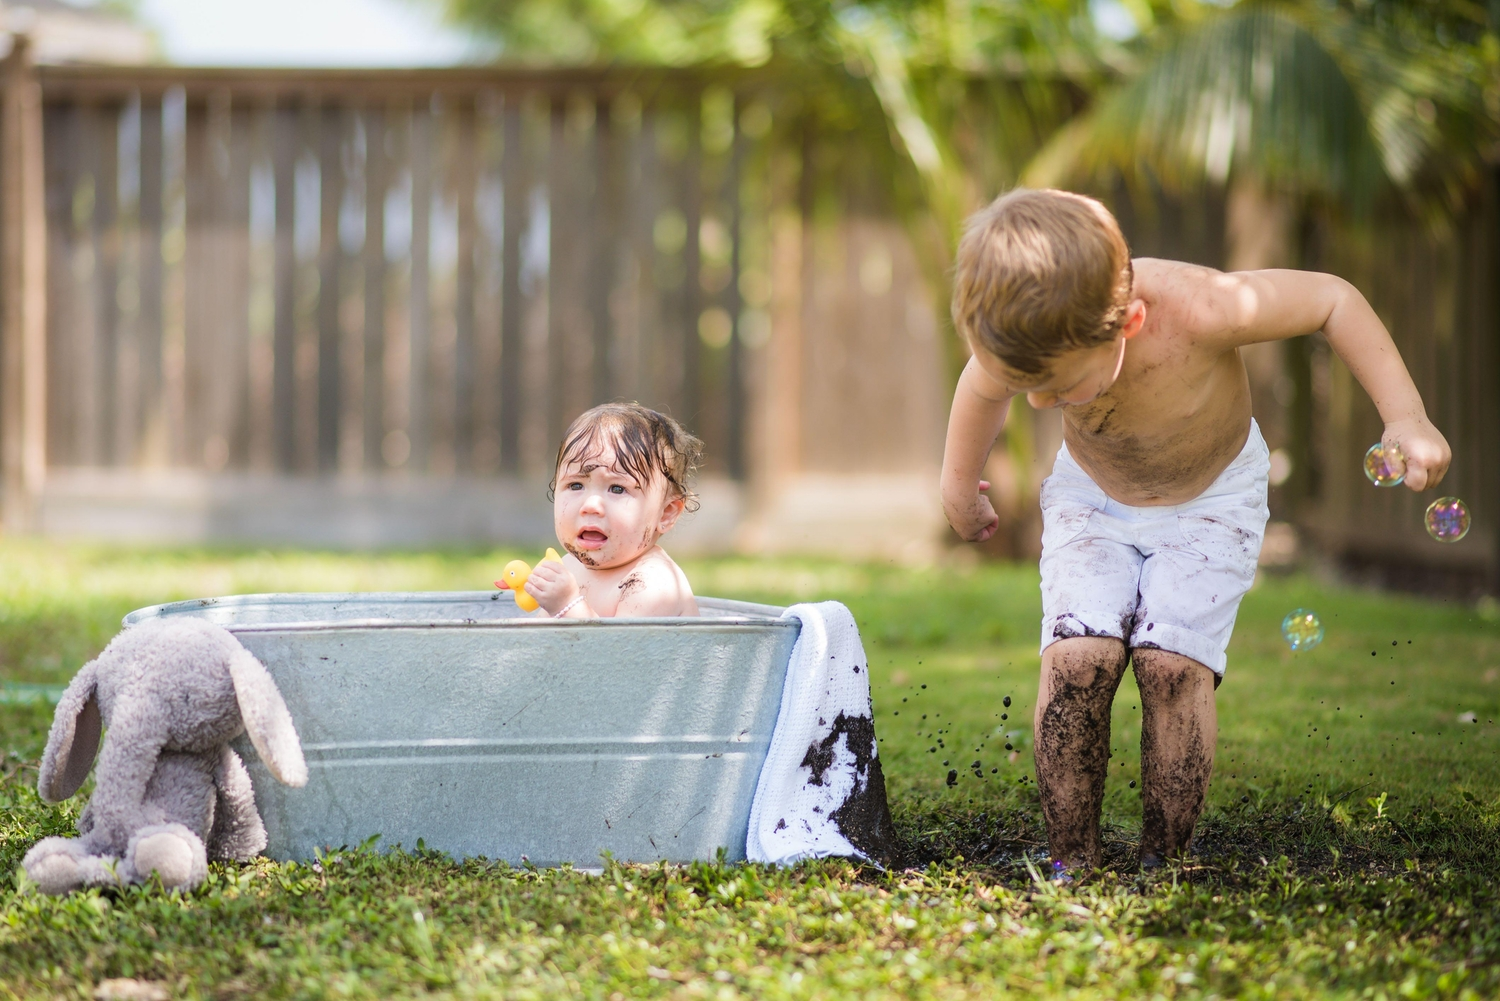 Baby taking a bath in metal tub with brother playing in the mud next to him